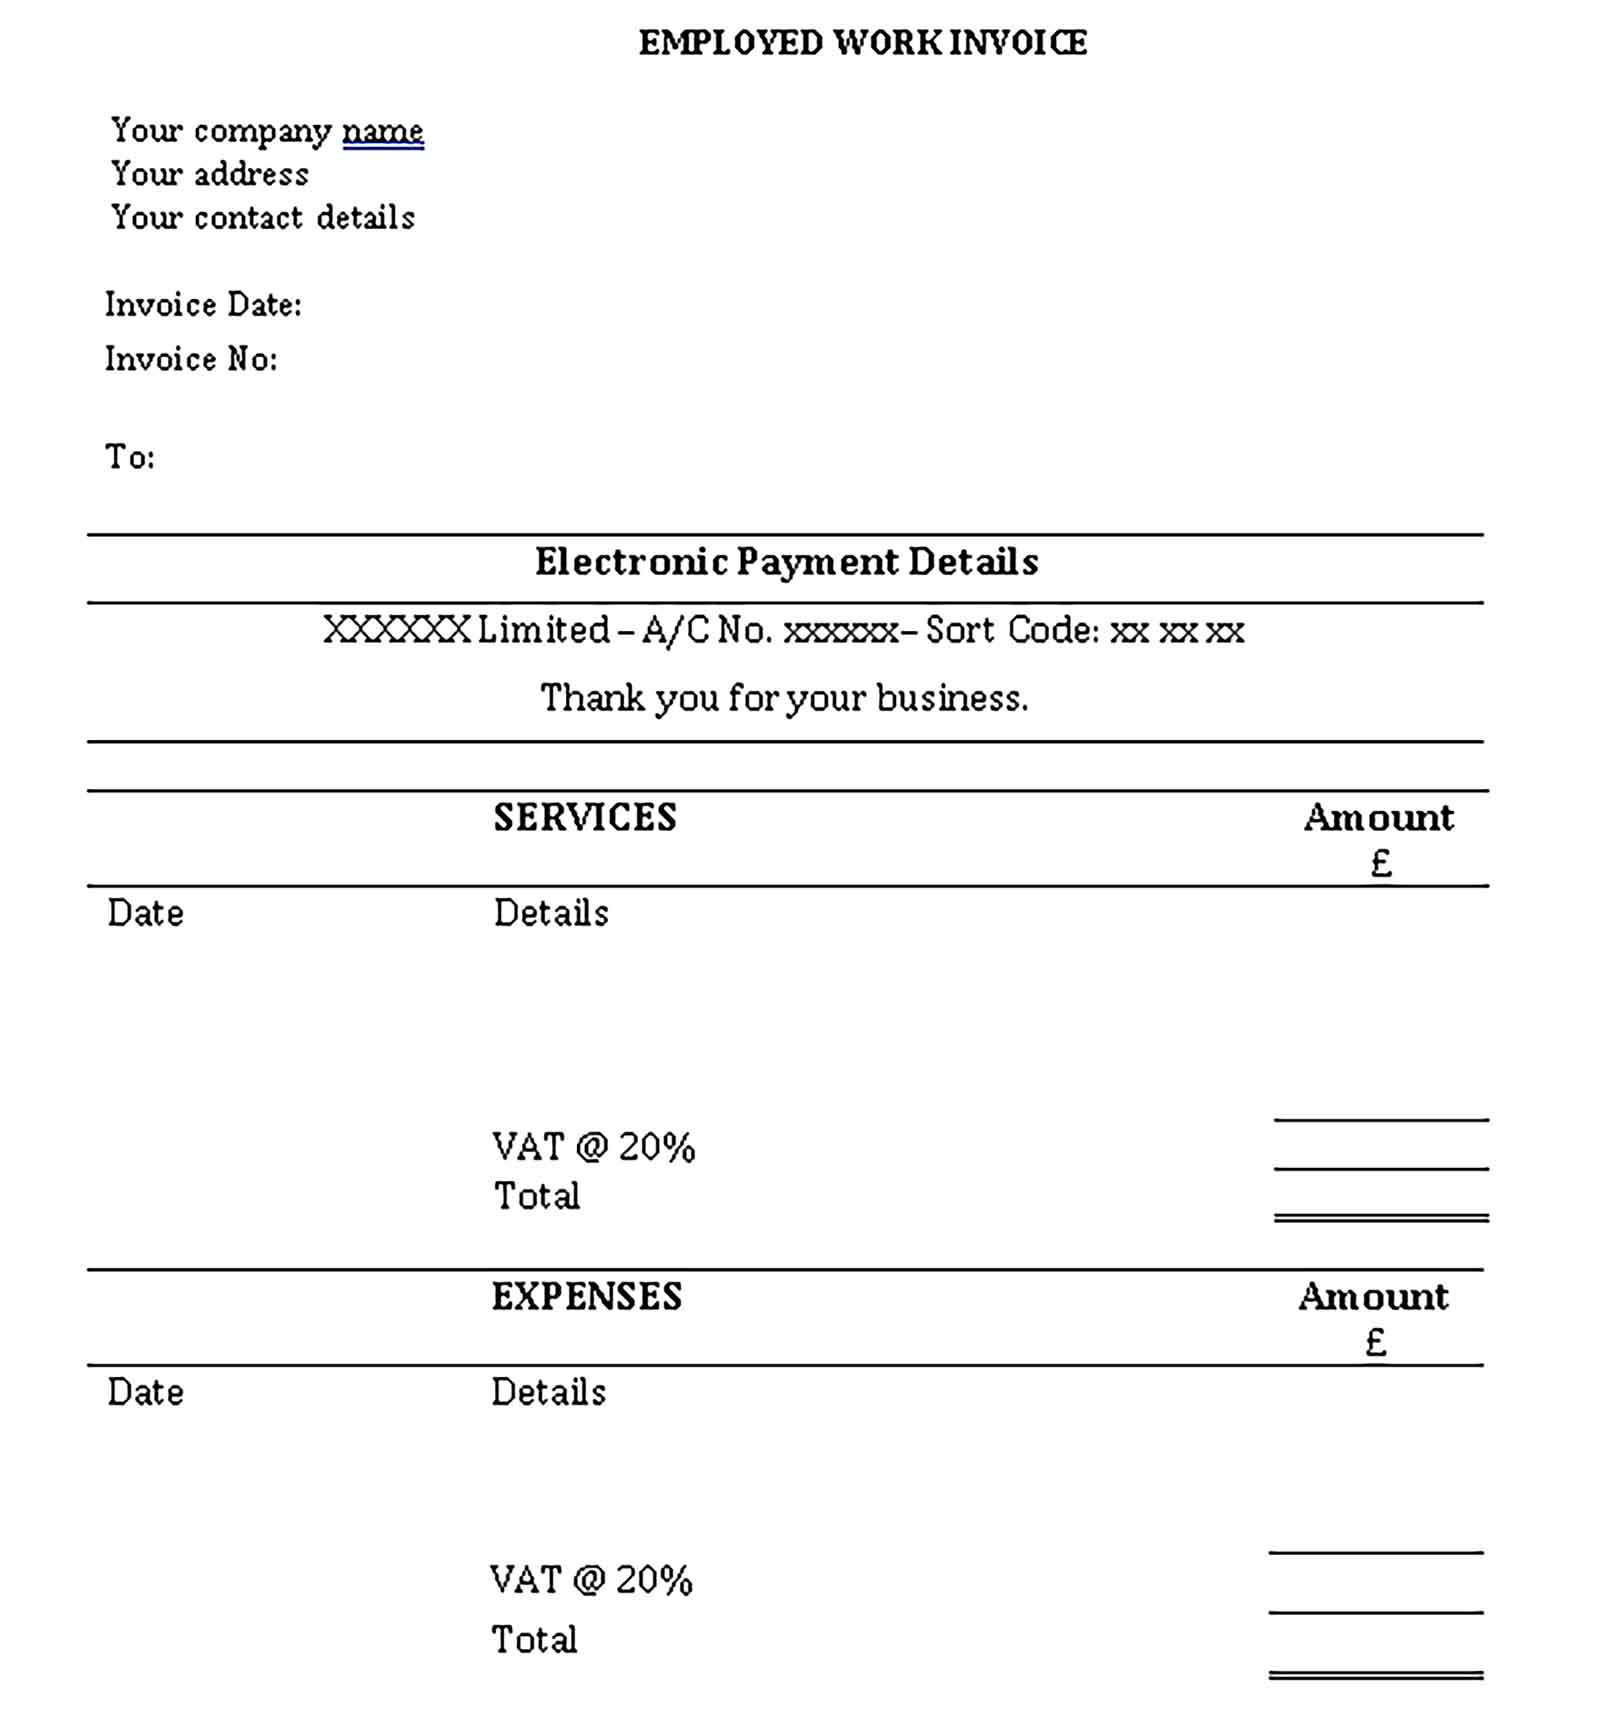 Sample Templates Self Employed Work Invoice